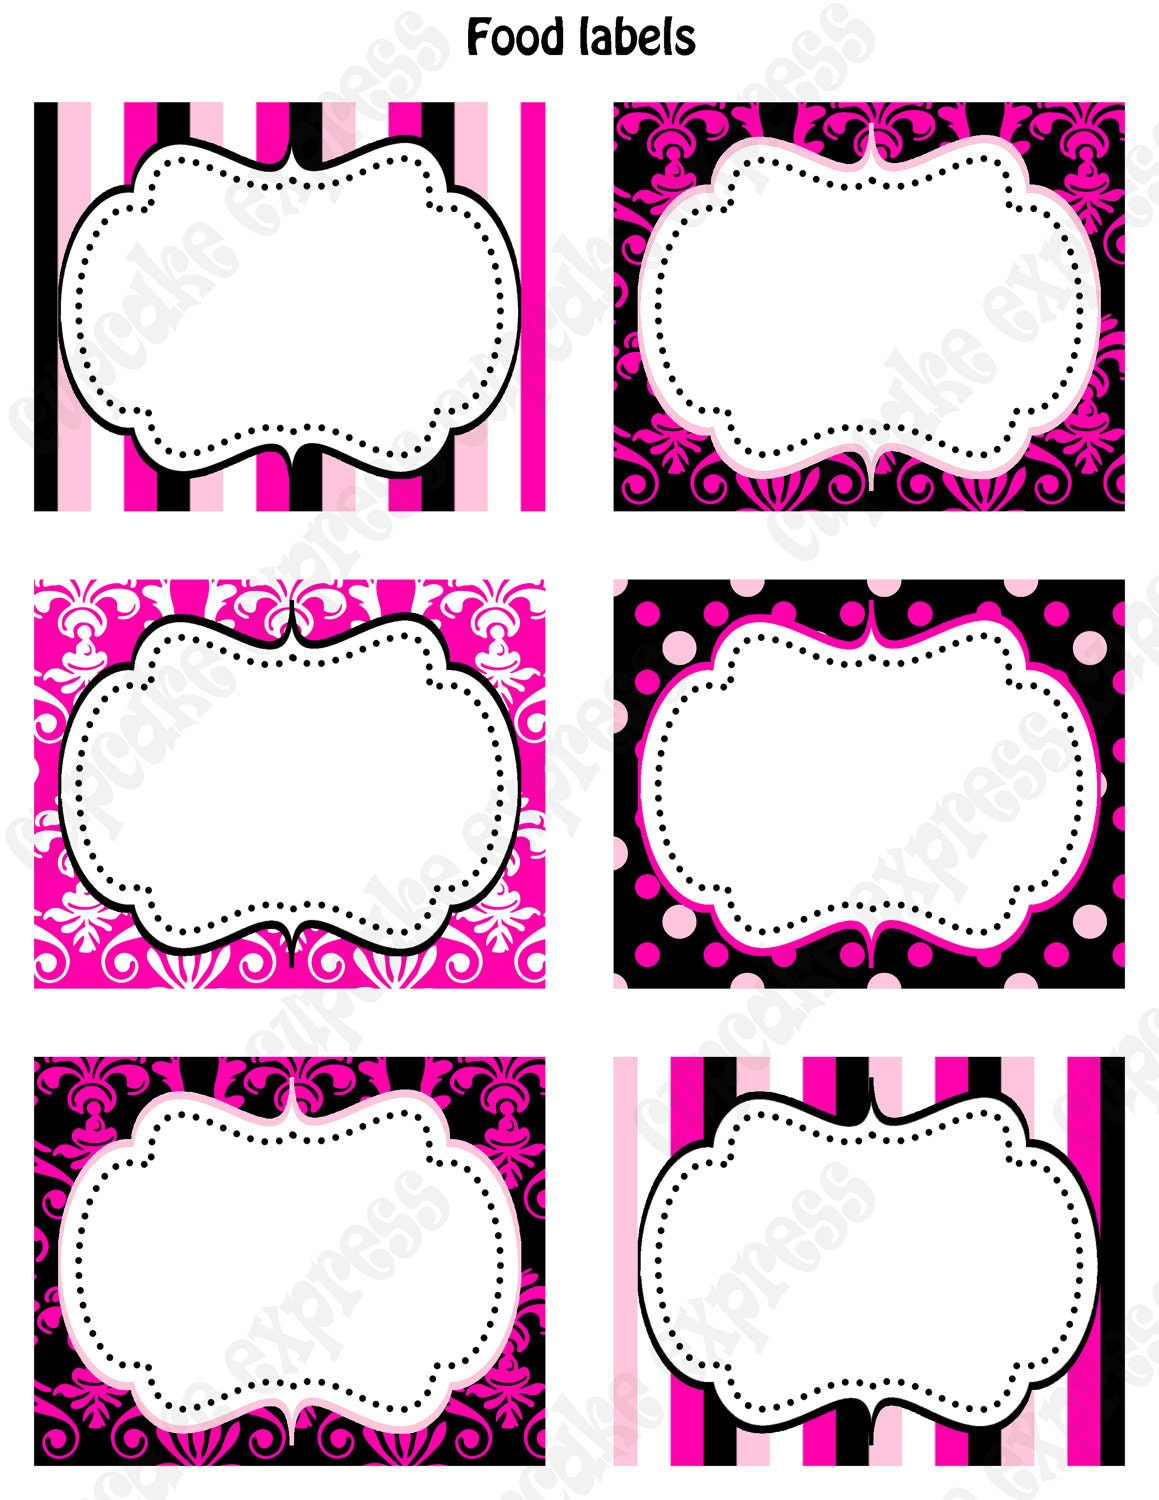 Free Printable Food Label Black and Pink